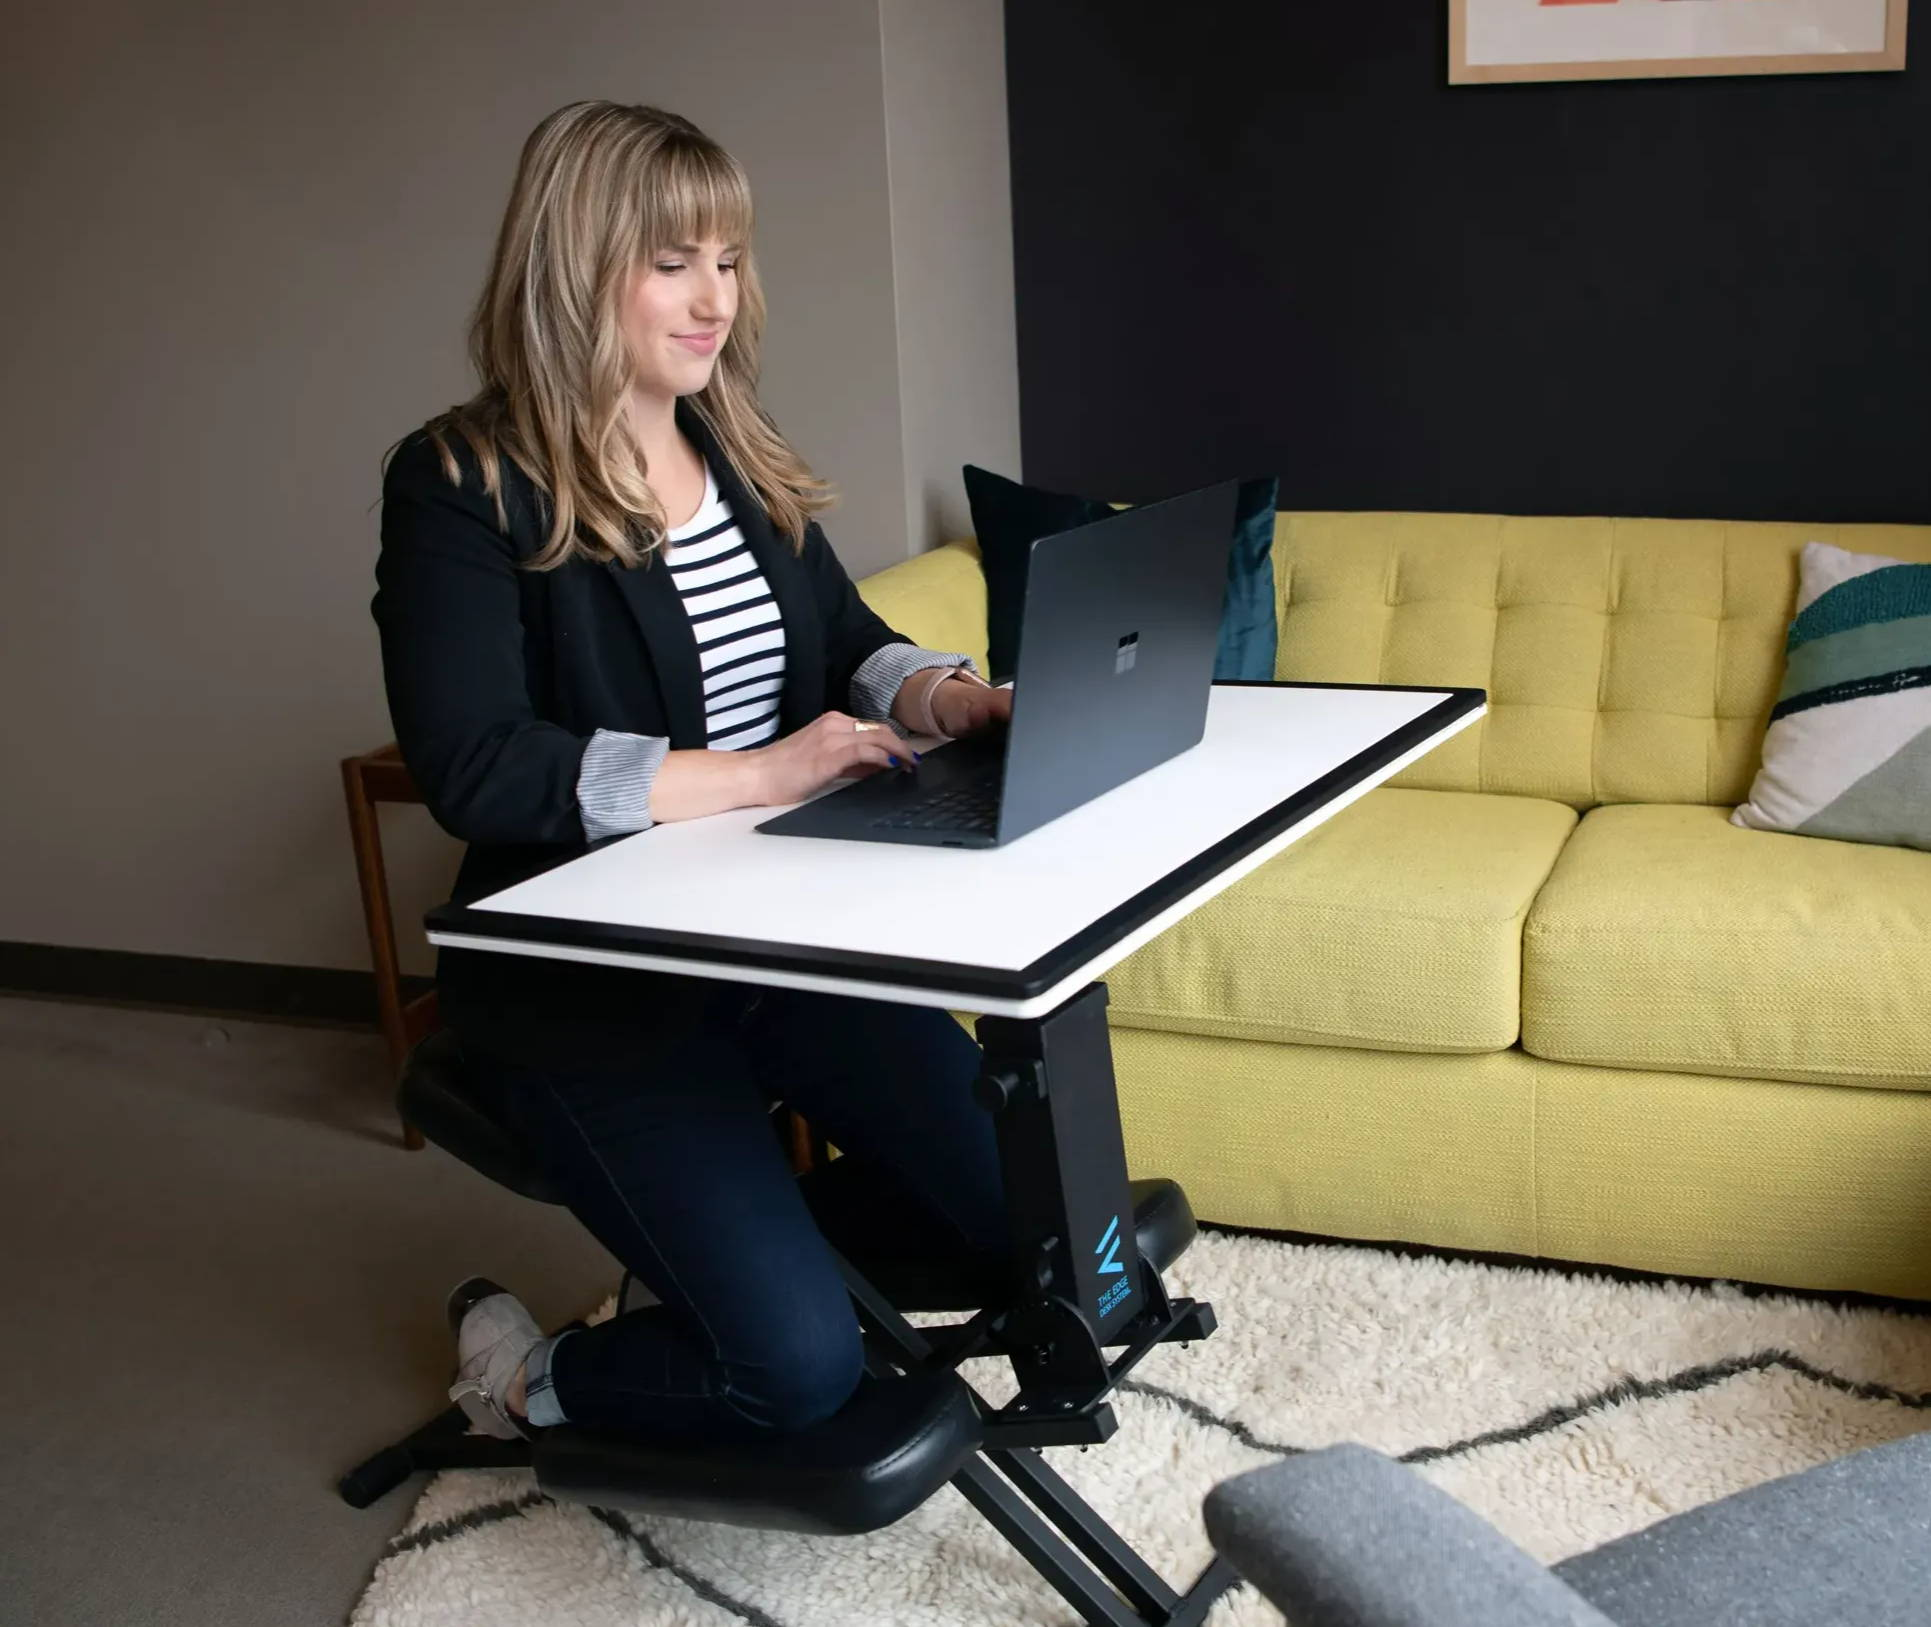 Woman using The Edge Desk, the best adjustable ergonomic kneeling desk for the office and back pain in her living room.